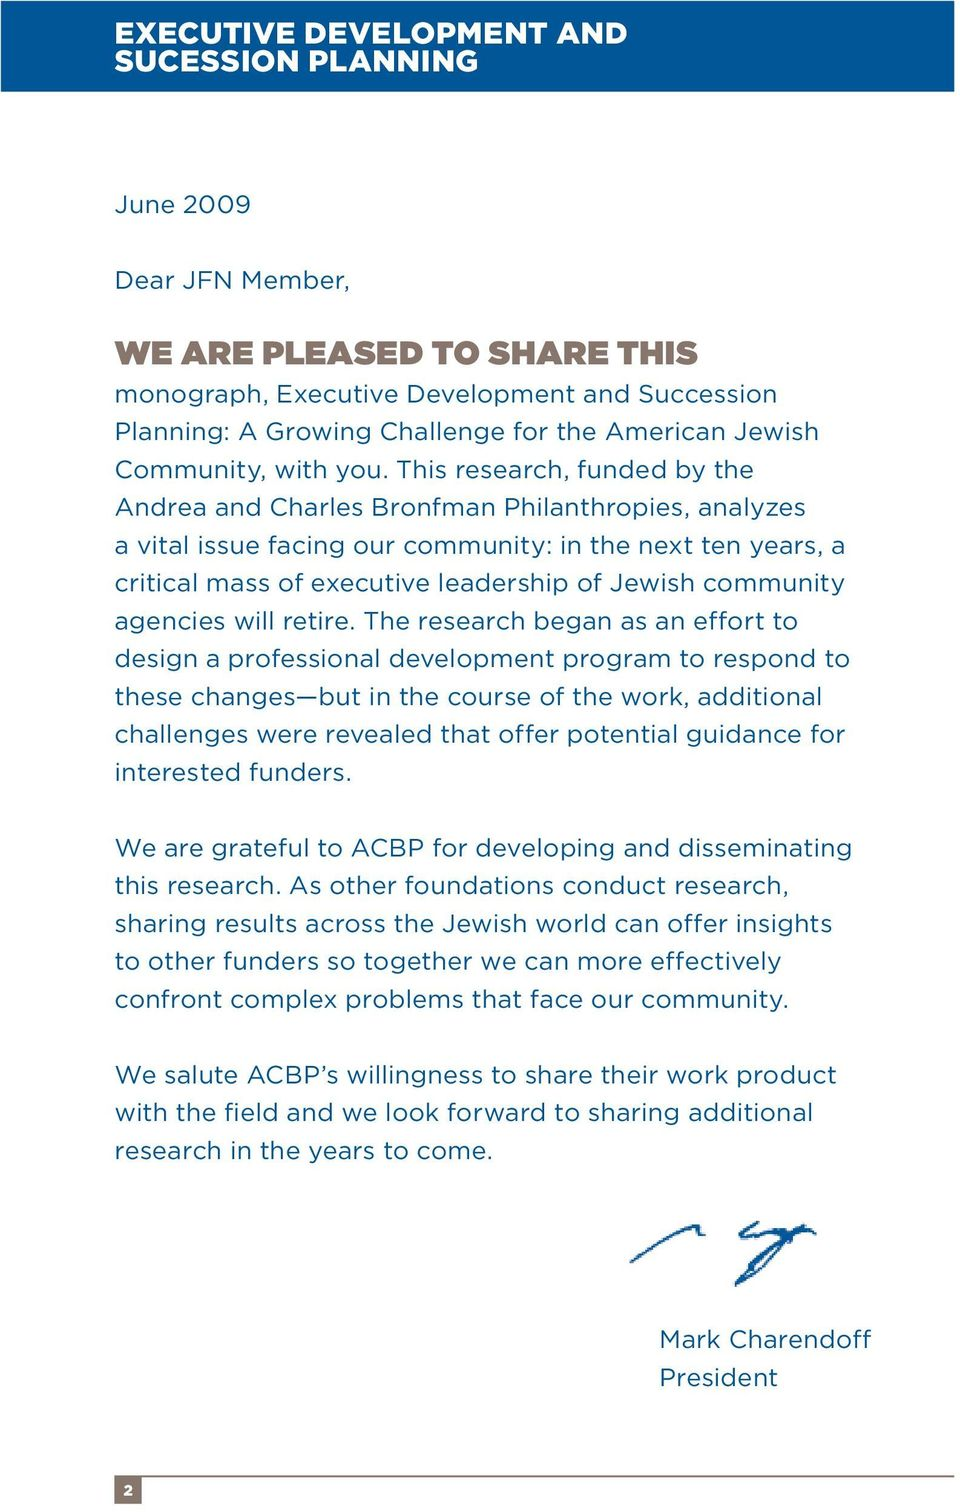 This research, funded by the Andrea and Charles Bronfman Philanthropies, analyzes a vital issue facing our community: in the next ten years, a critical mass of executive leadership of Jewish